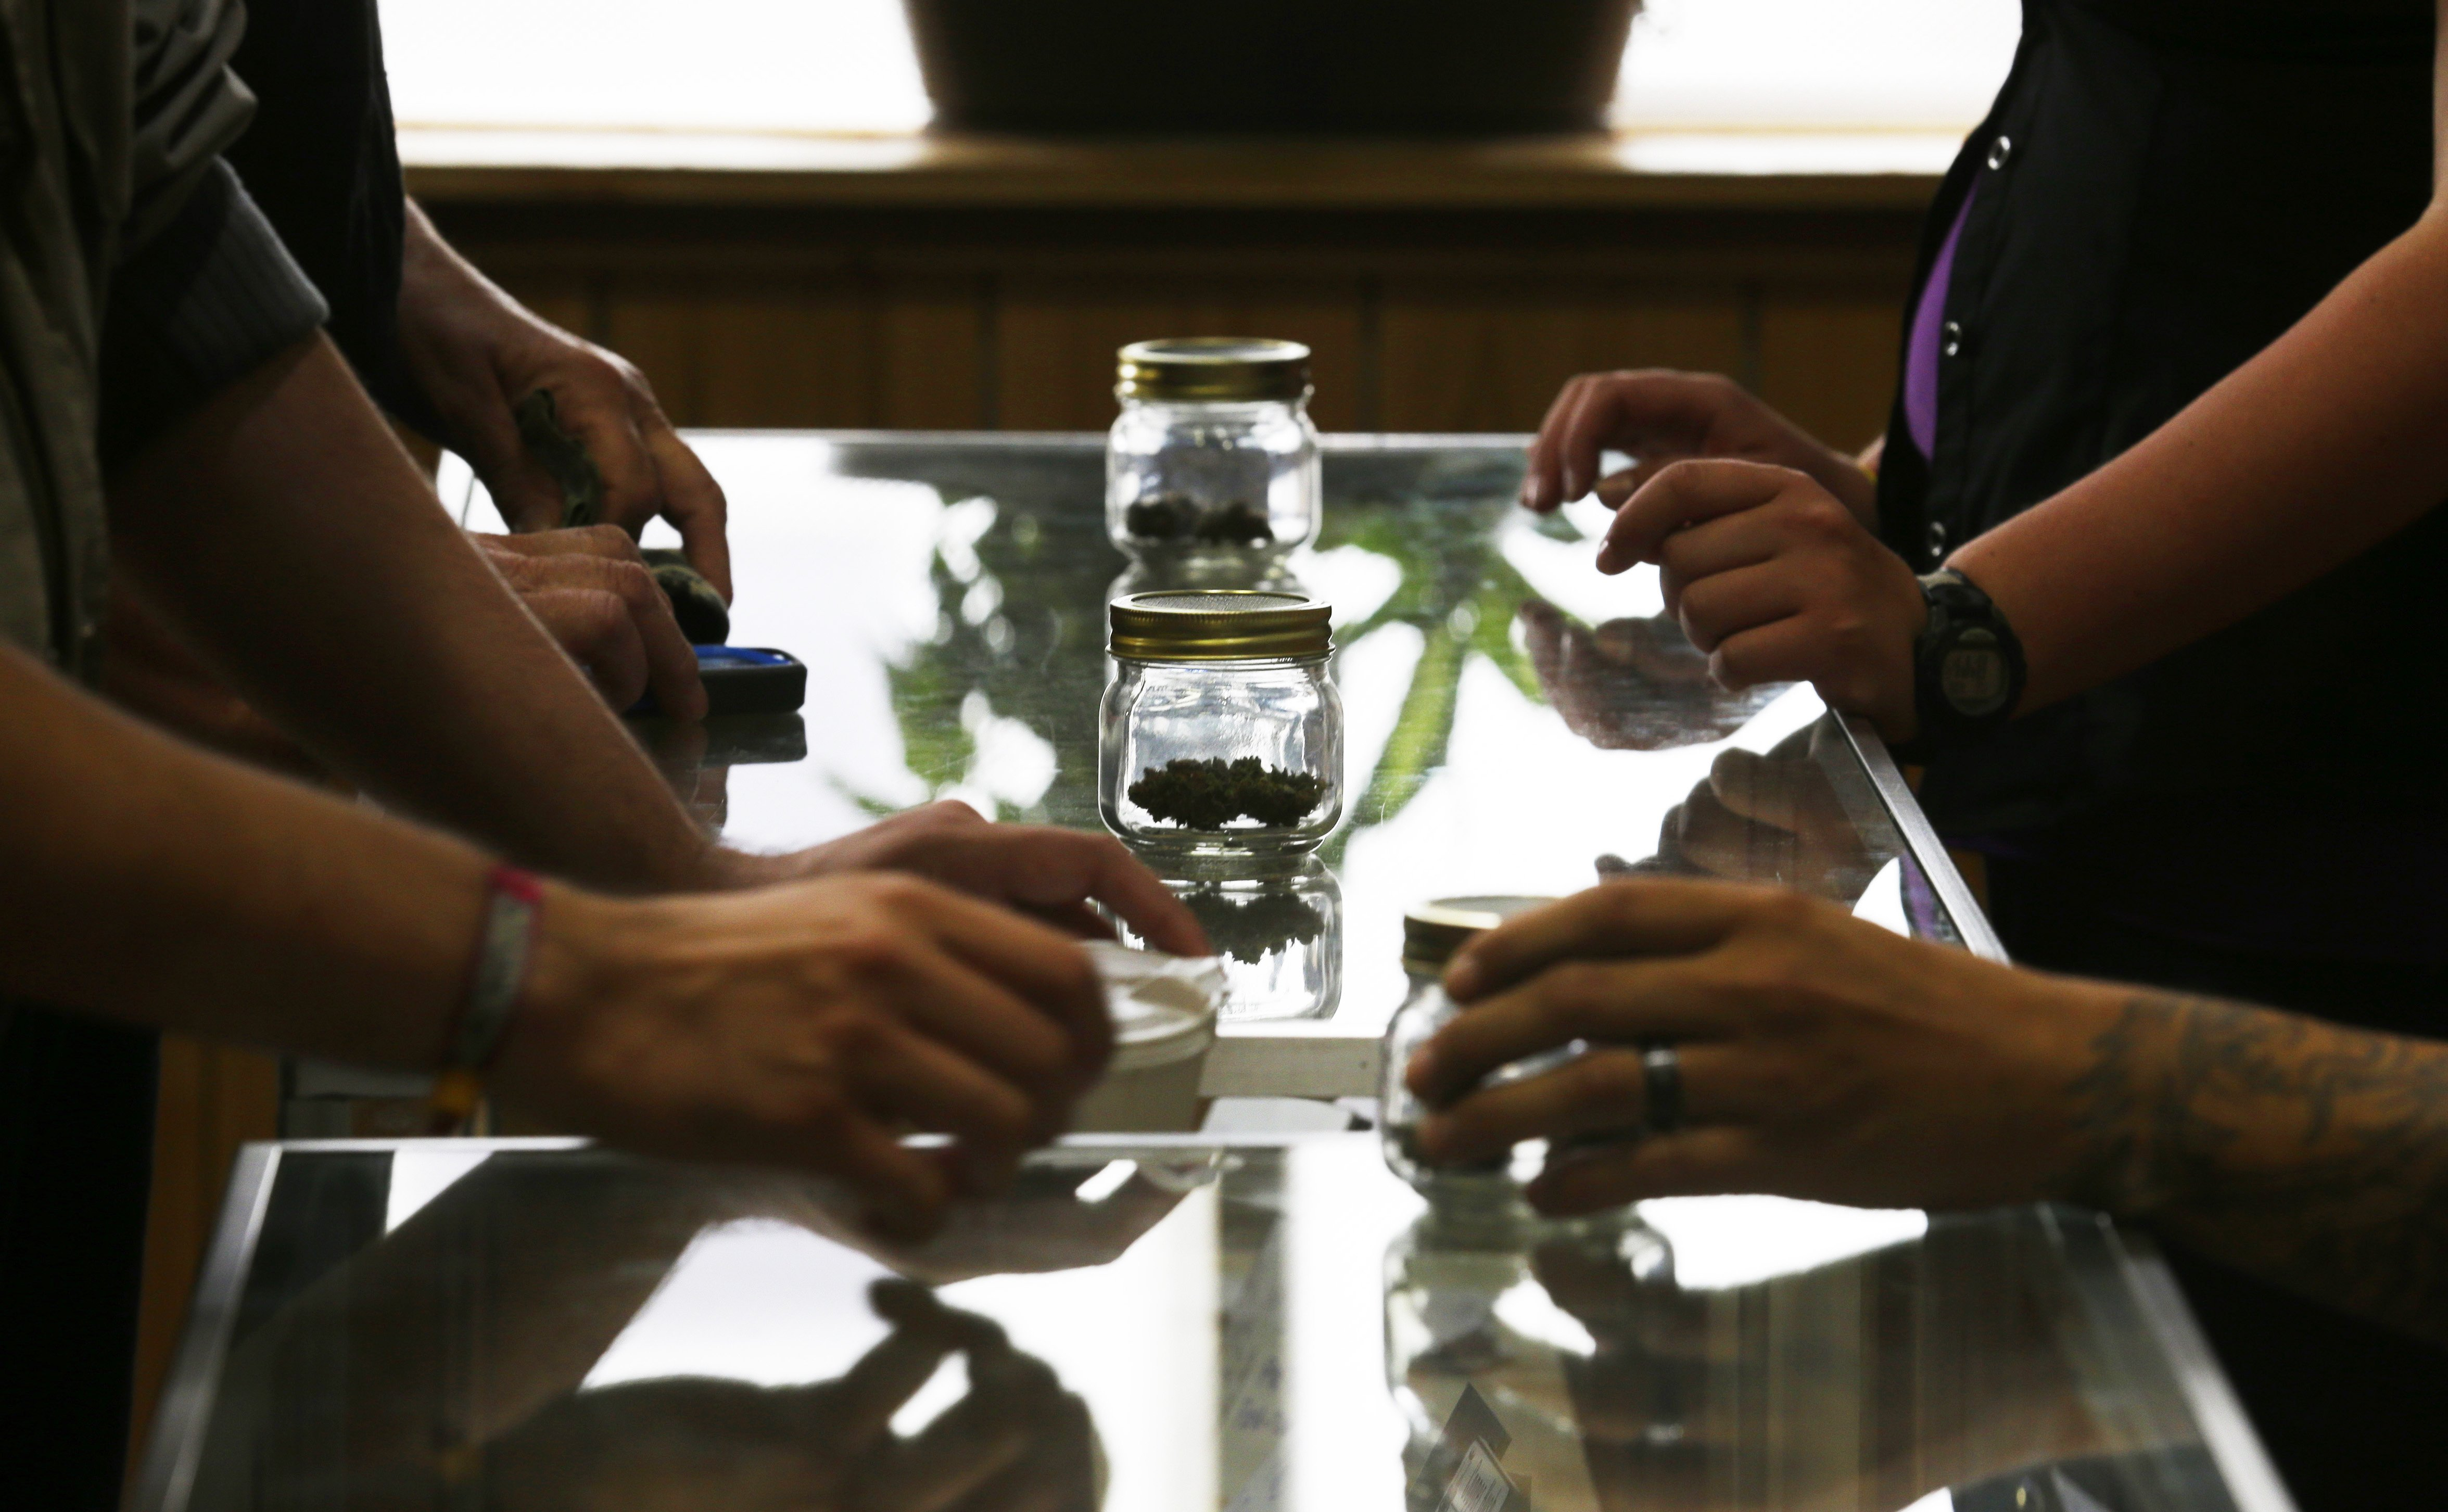 """Customers on the left and sales clerks on the right pass """"sniff jars"""" back and forth on a glass countertop as they discuss different strains of recreational marijuana at Top Shelf Cannabis in Bellingham, Wash. on July 8, 2014."""